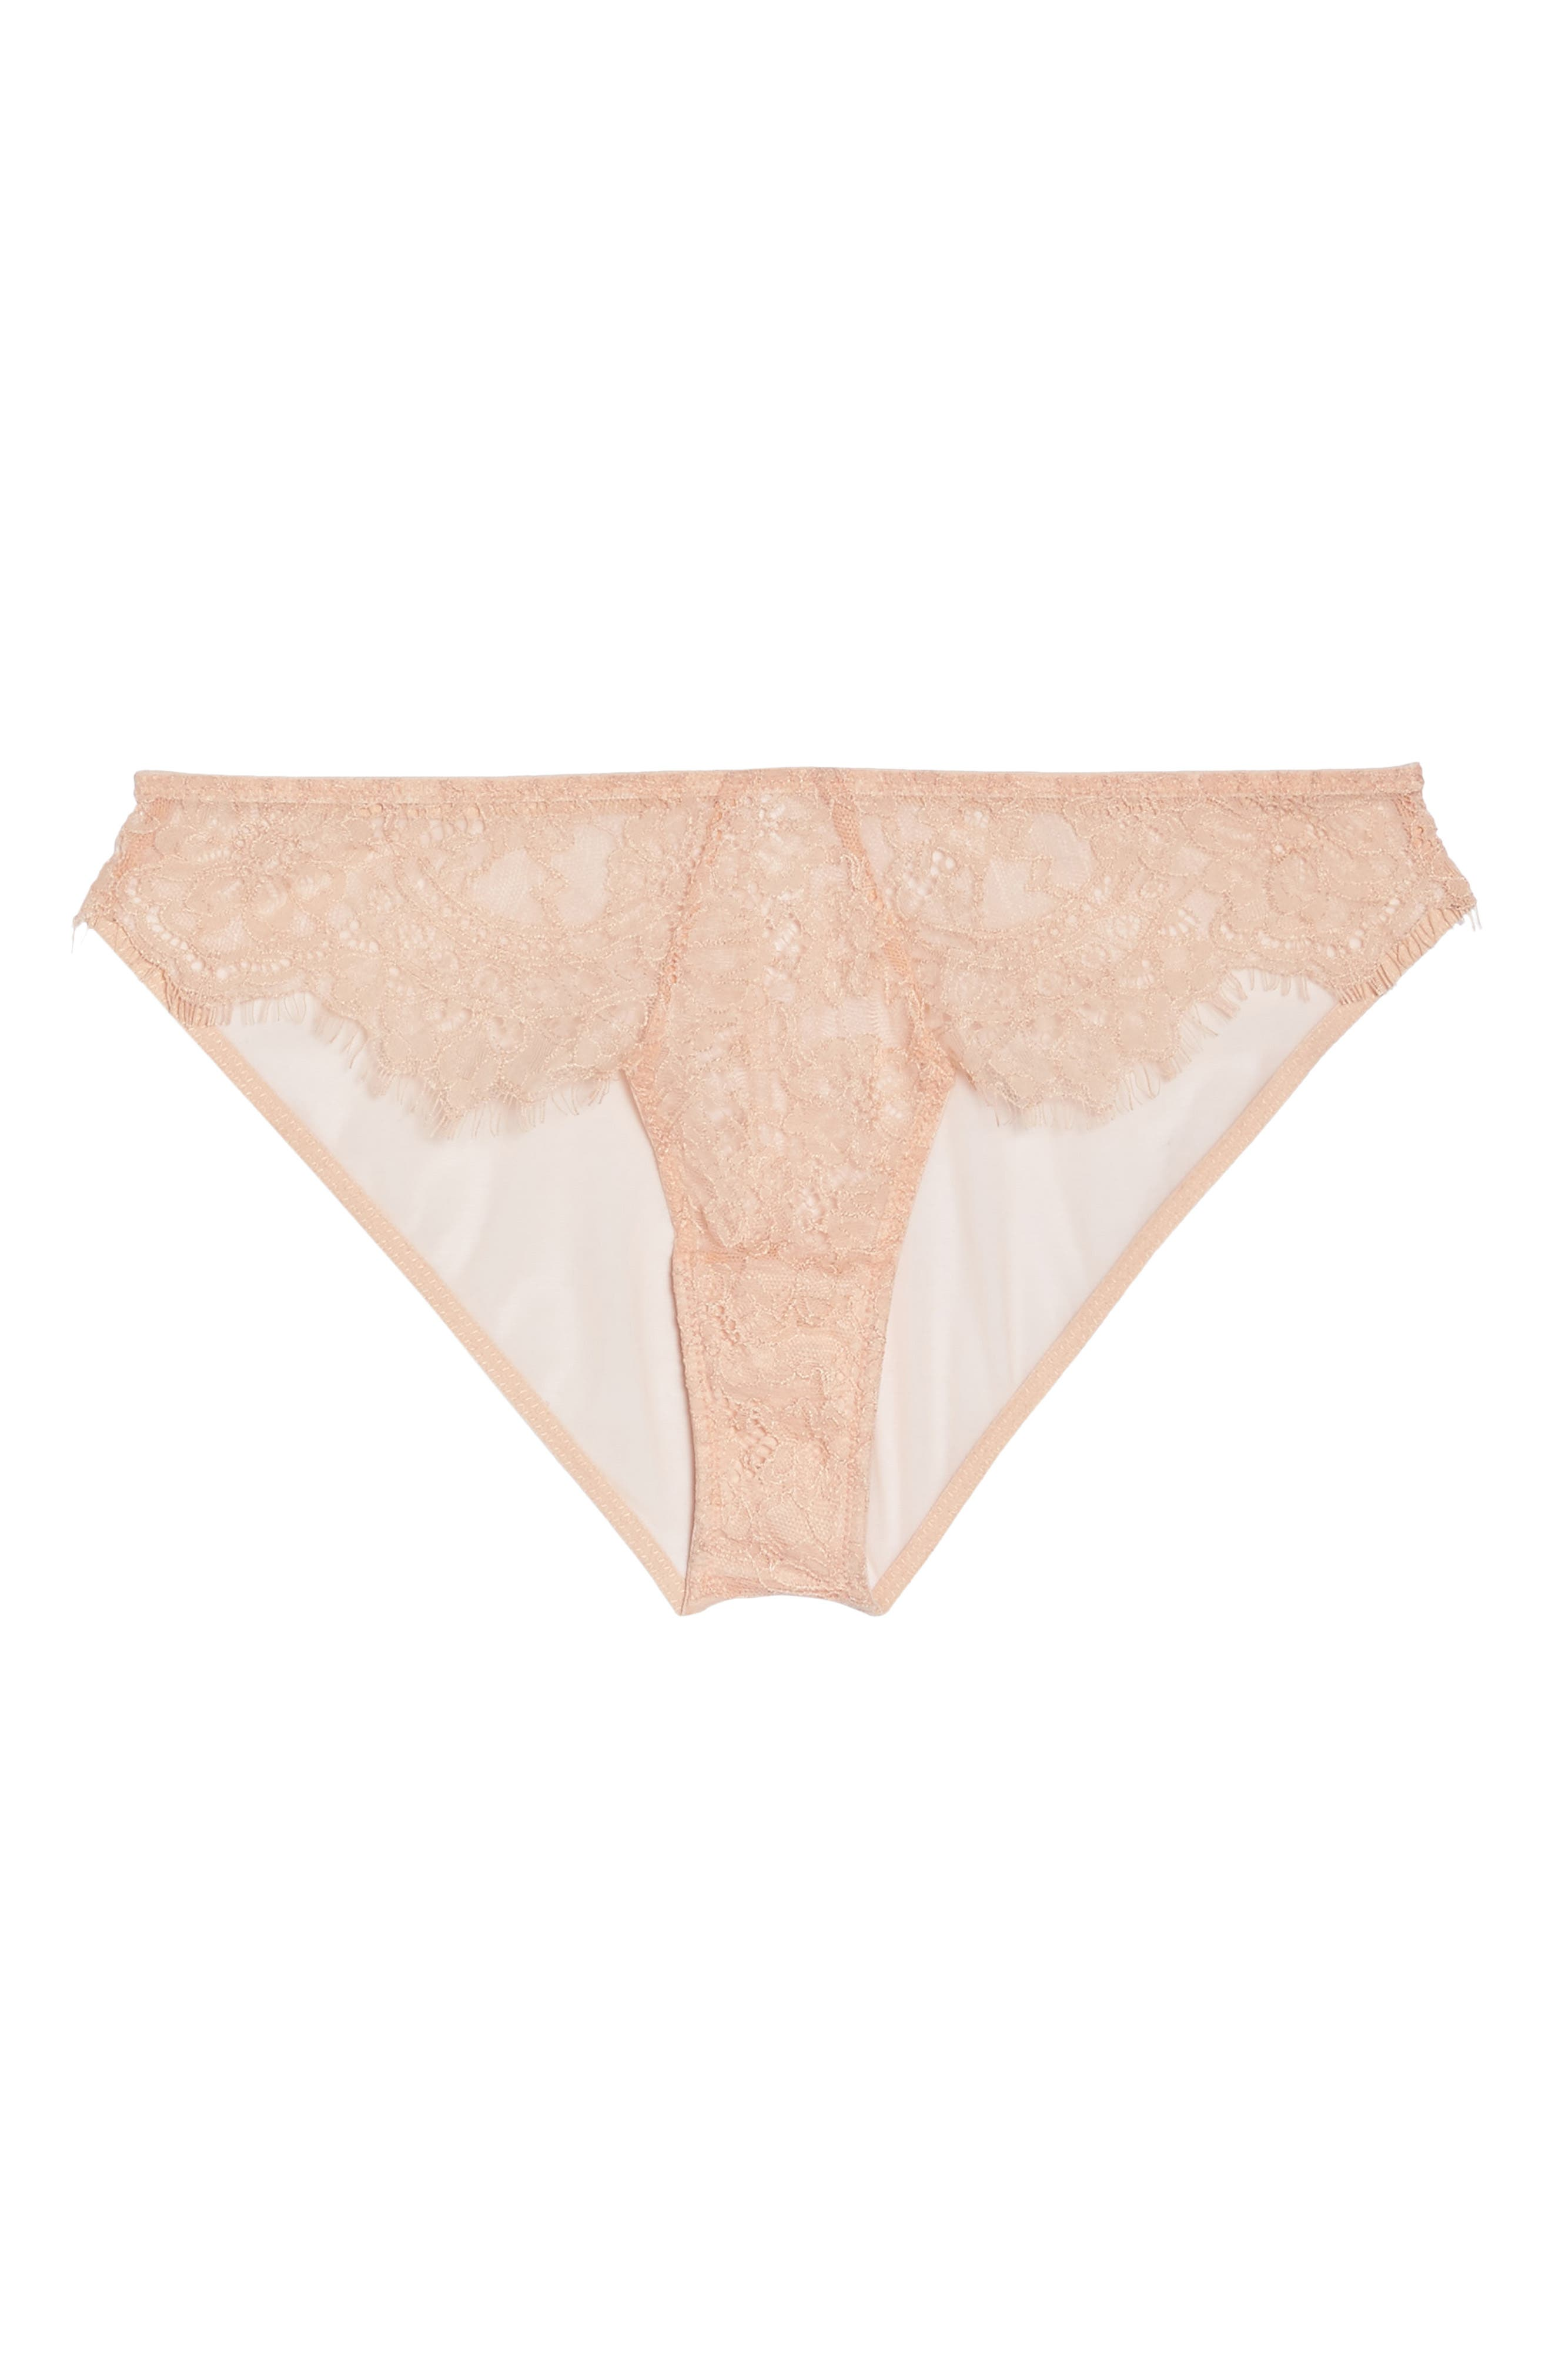 Thistle & Spire Graham Lace Bikini,                             Alternate thumbnail 4, color,                             Blush